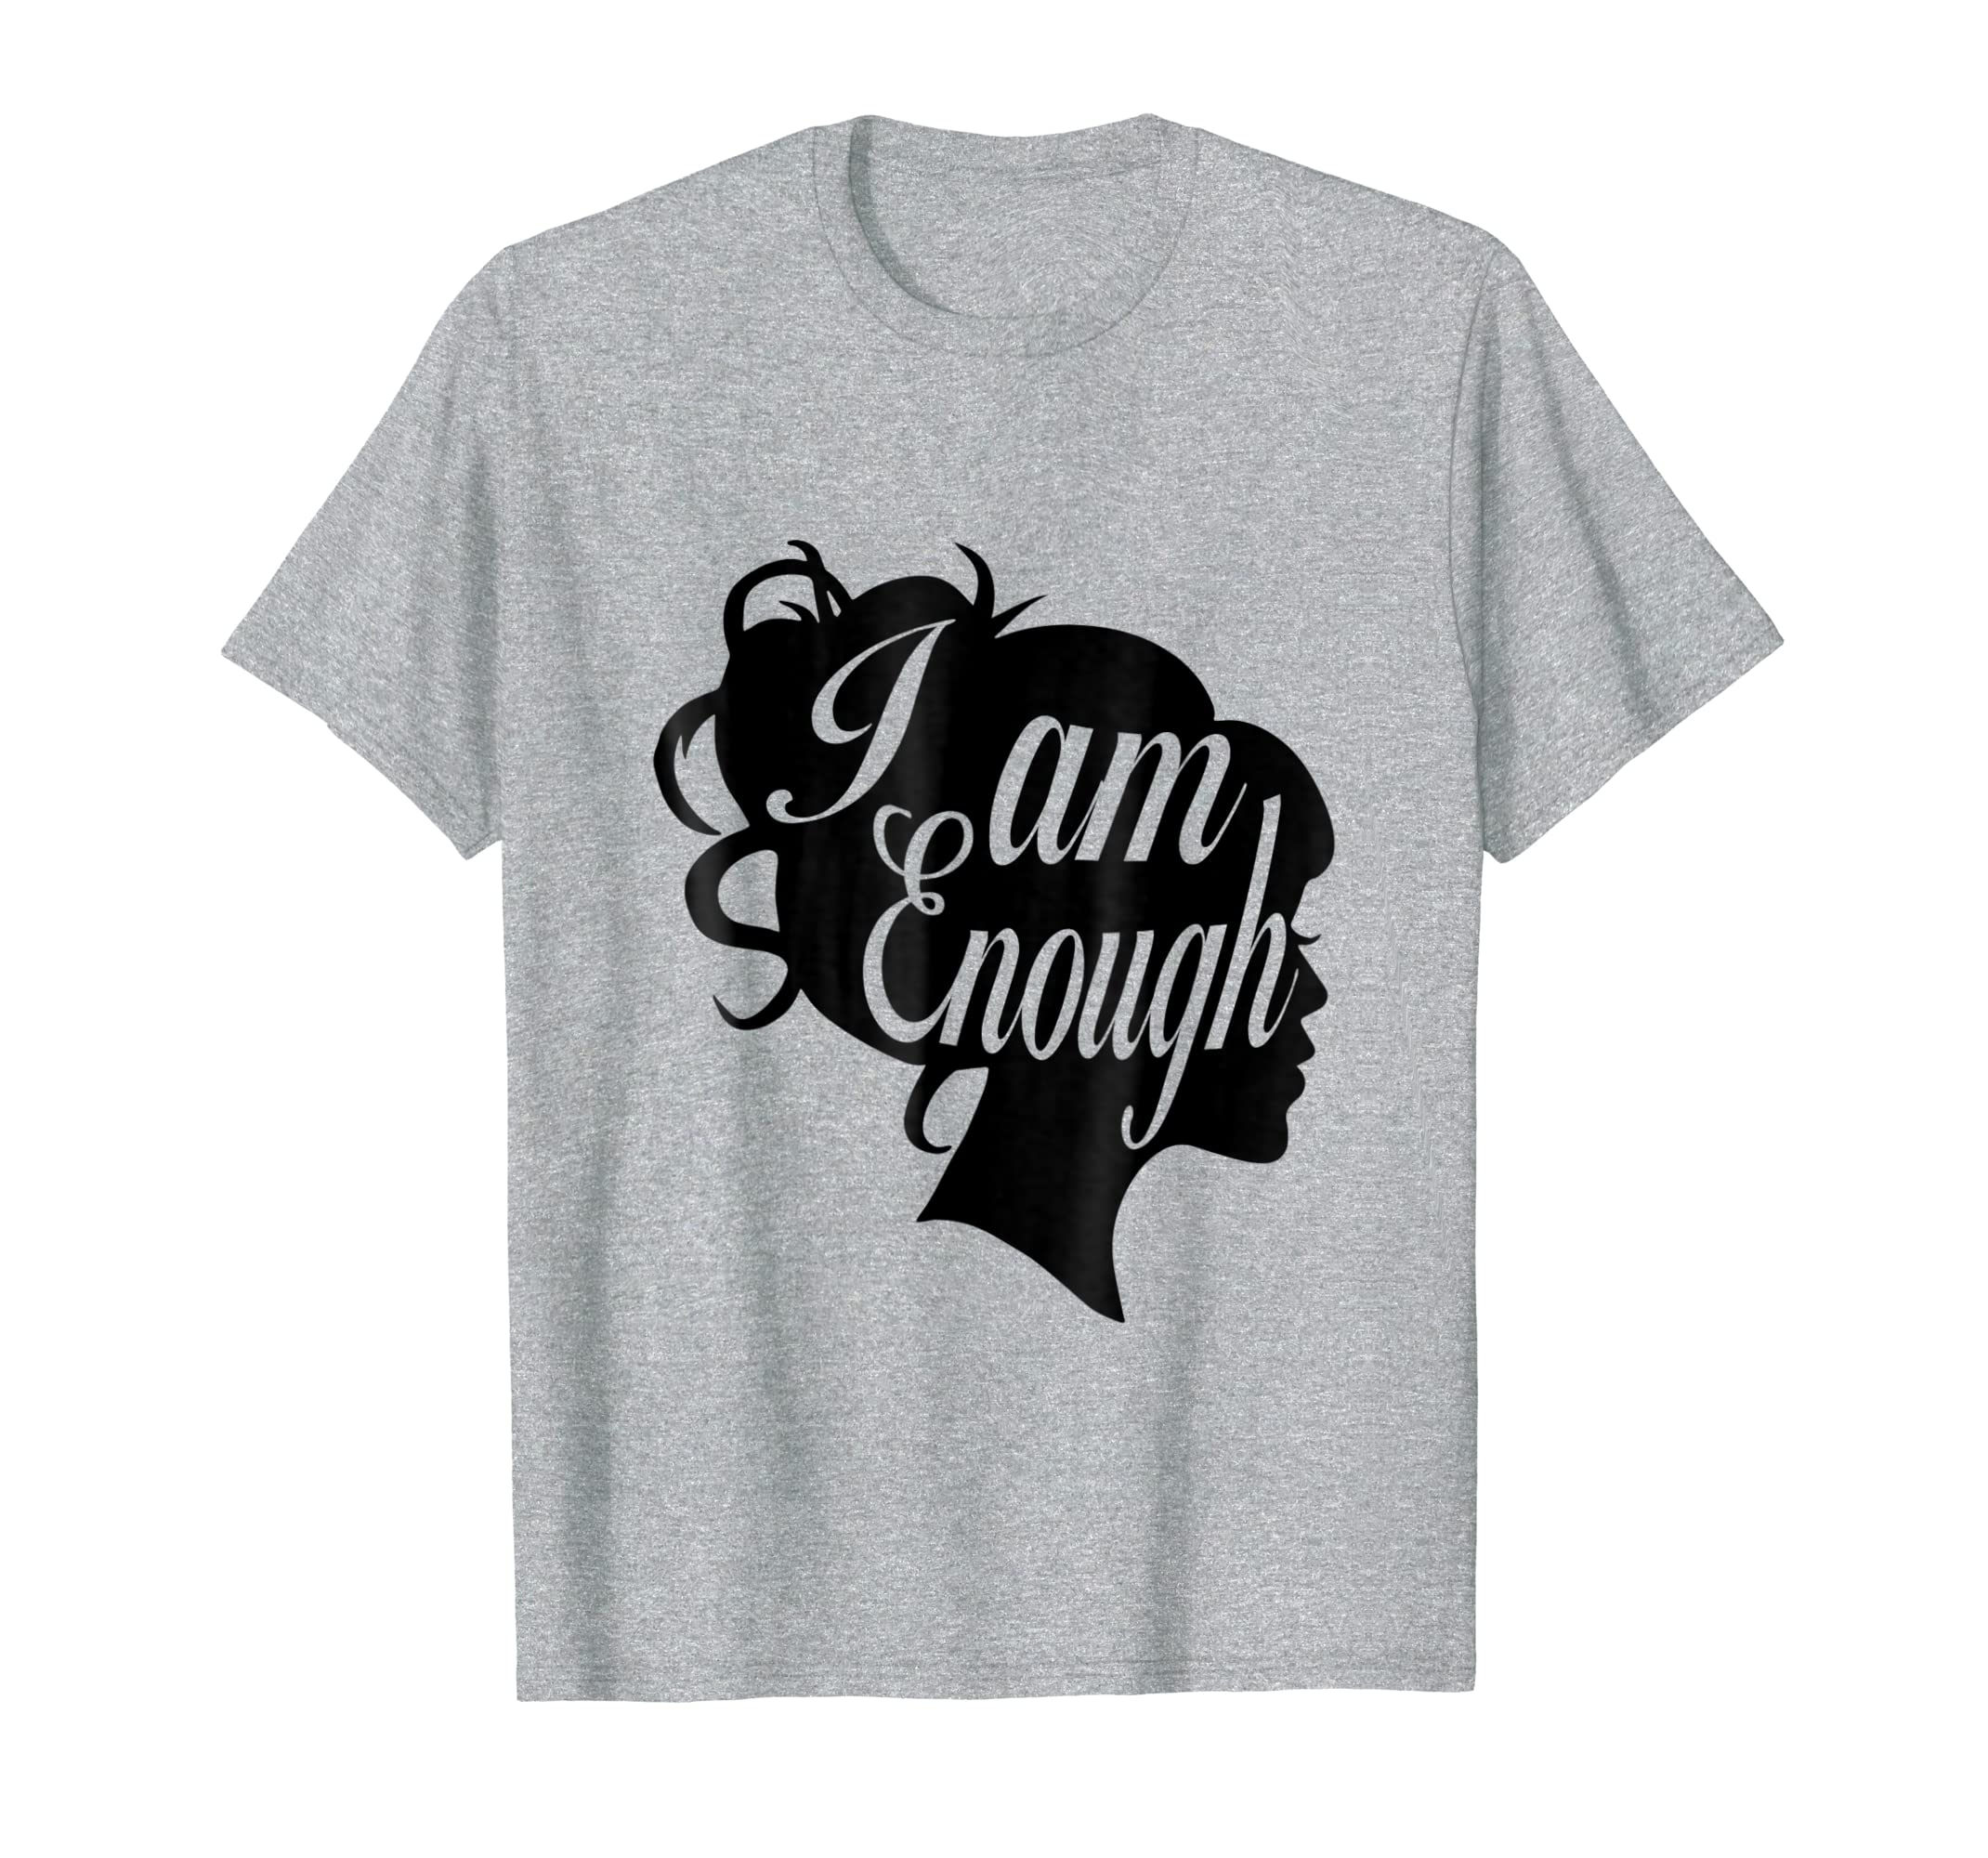 I am Enough T shirt for women right empowerment